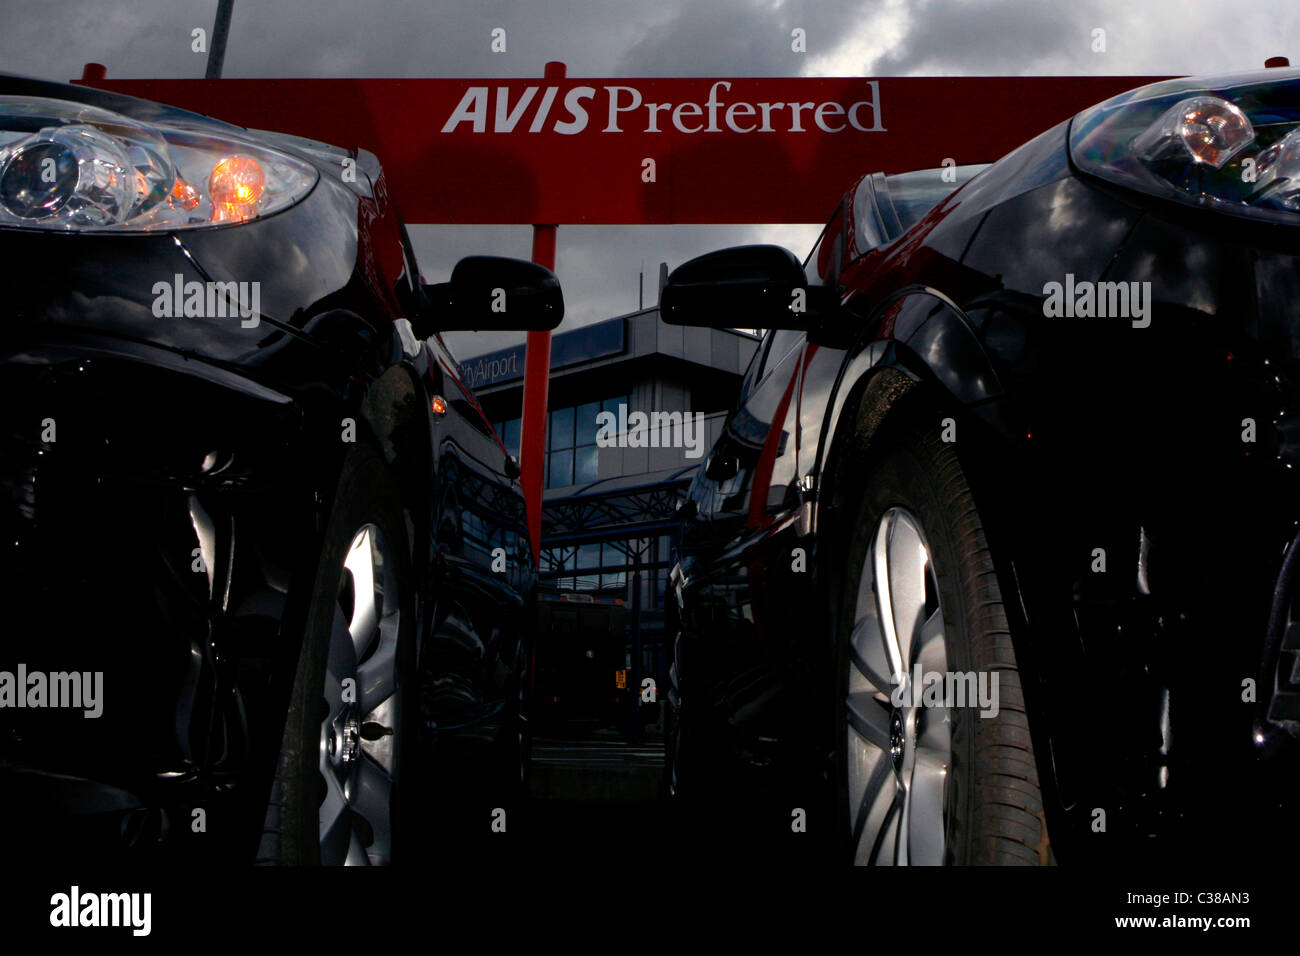 Avis Car Hire Sanford Airport Florida